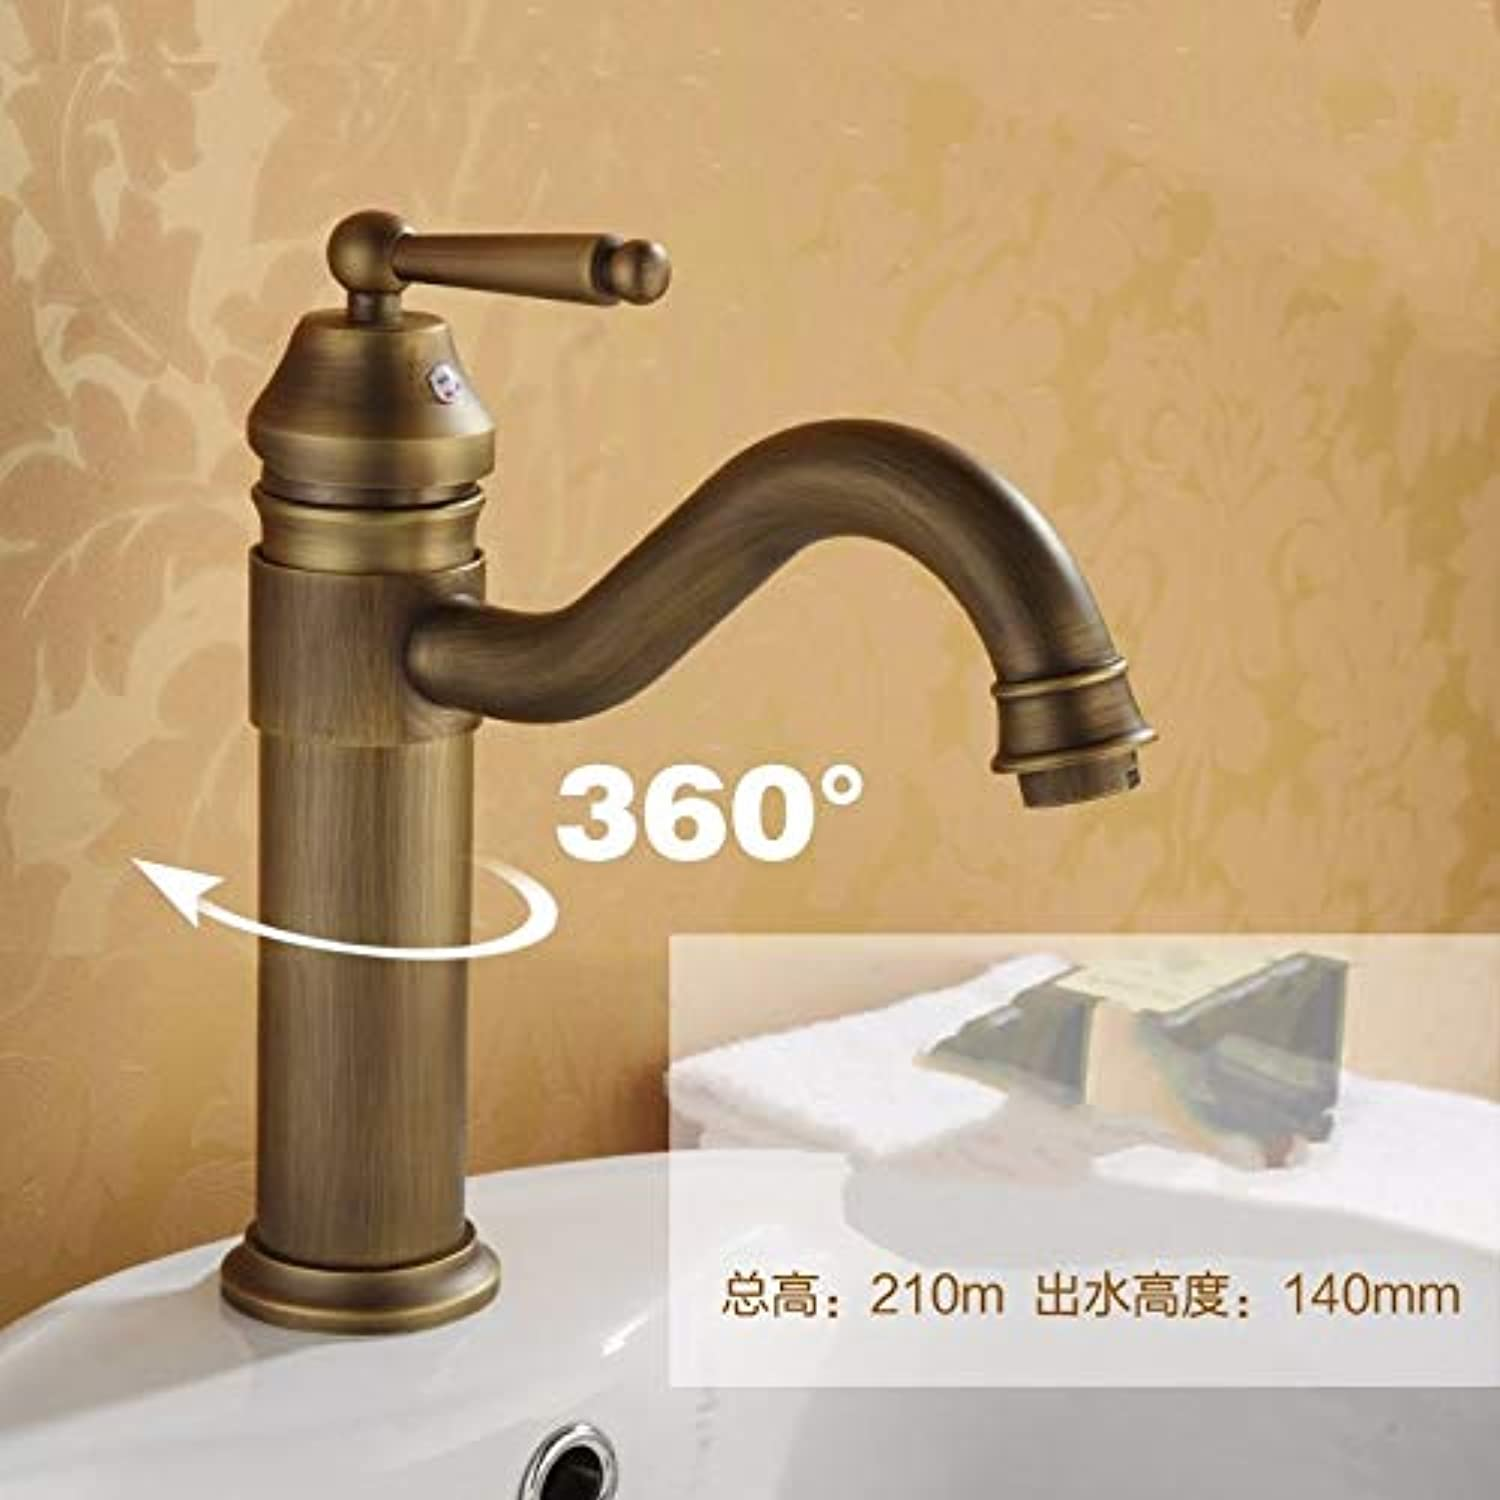 JWLT Faucet European All Copper Basin, Podium with high tap, Single Hole Retro washbasin, General Cold and hot Faucet can be redated,Short, high 230mm